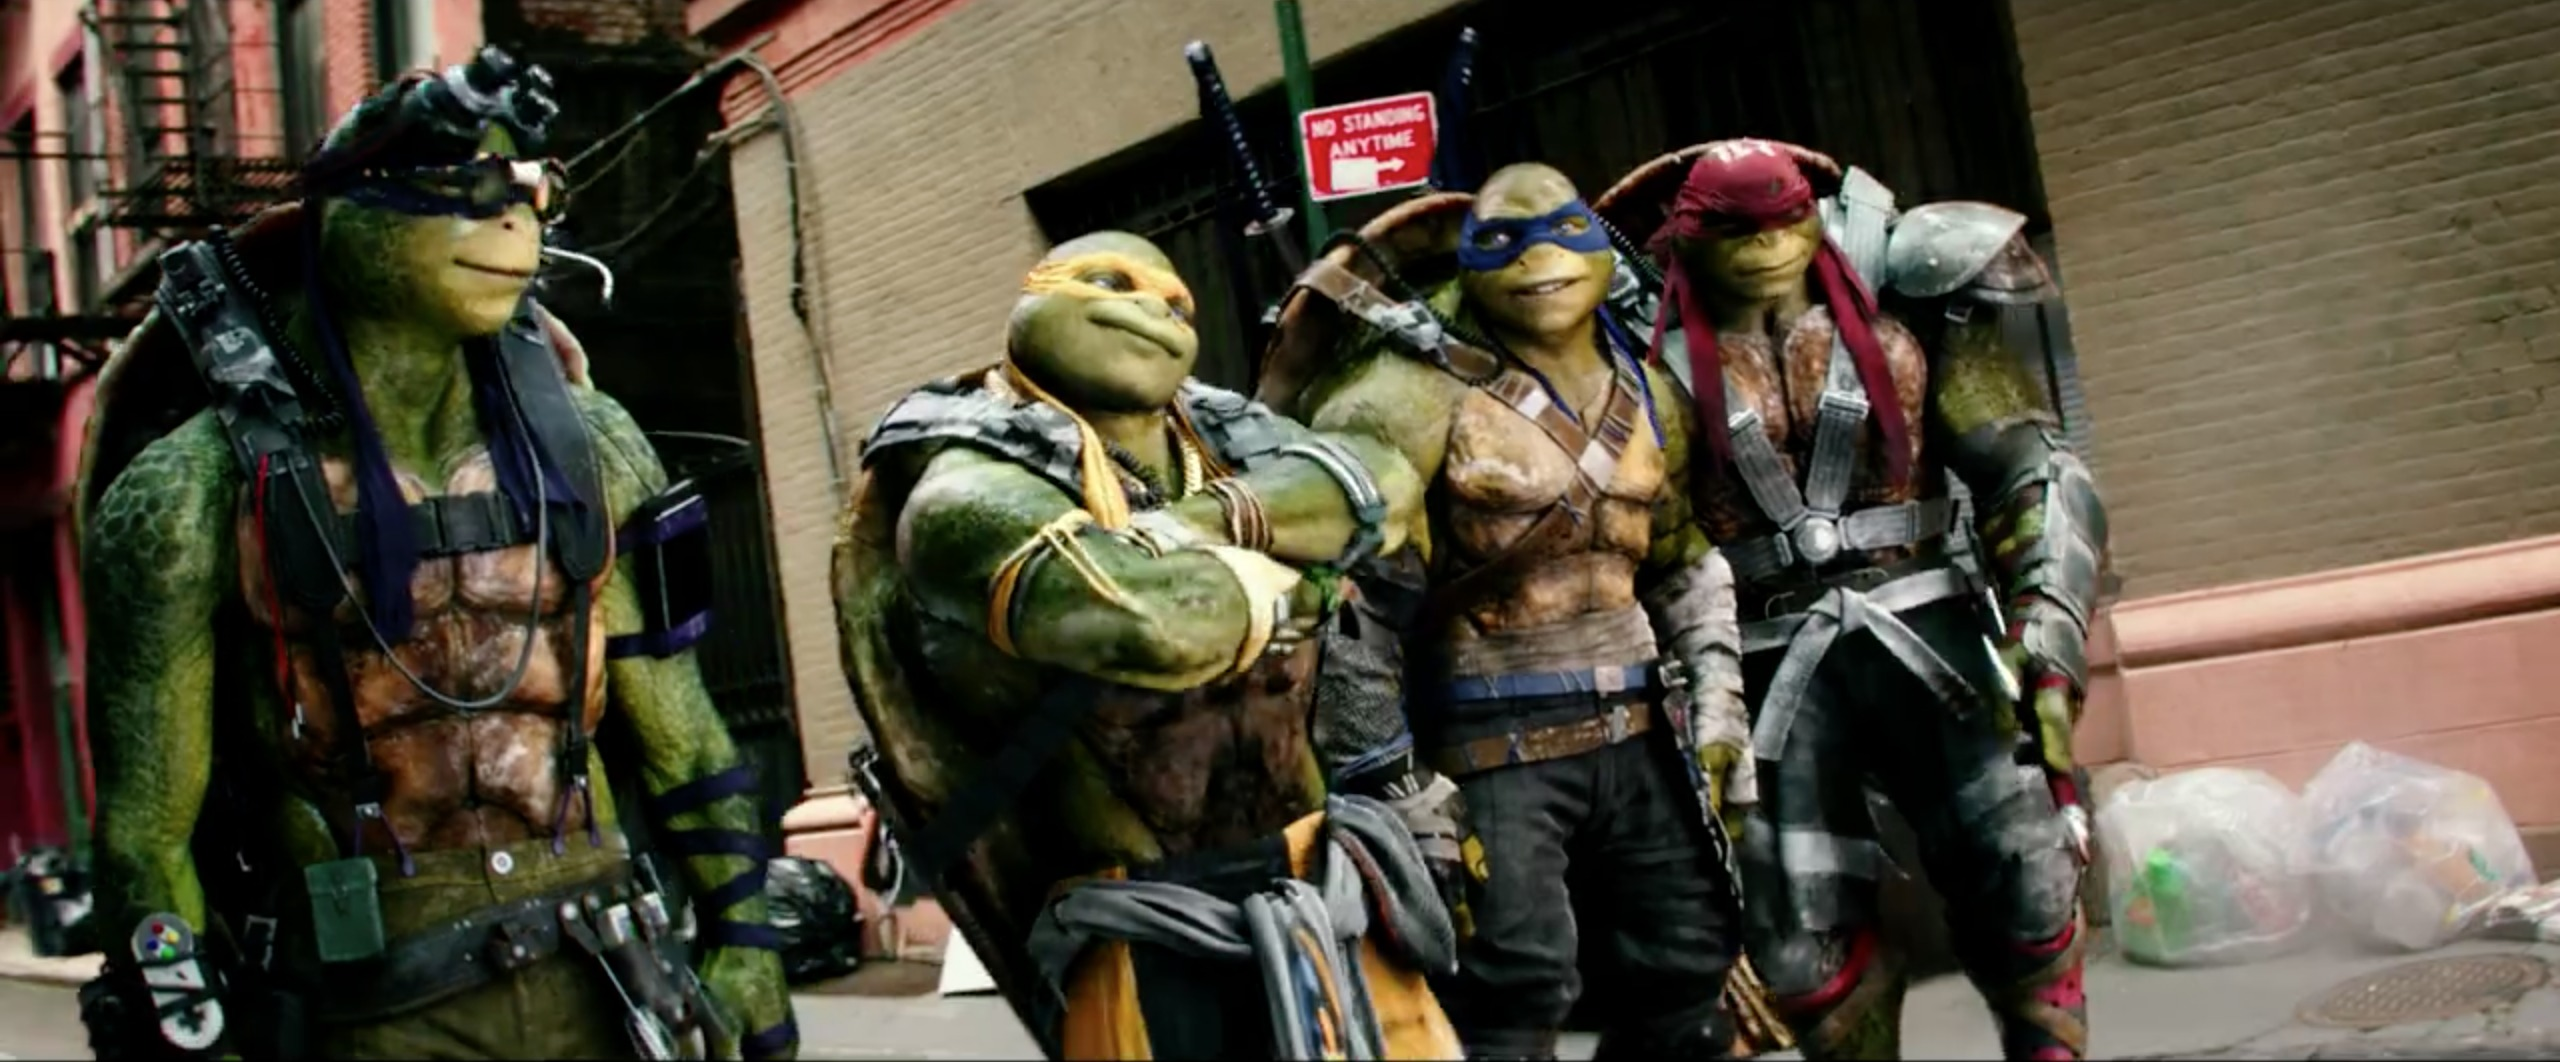 Teenage Mutant Ninja Turtles Out of the Shadows-10Dezembro2015 (1)